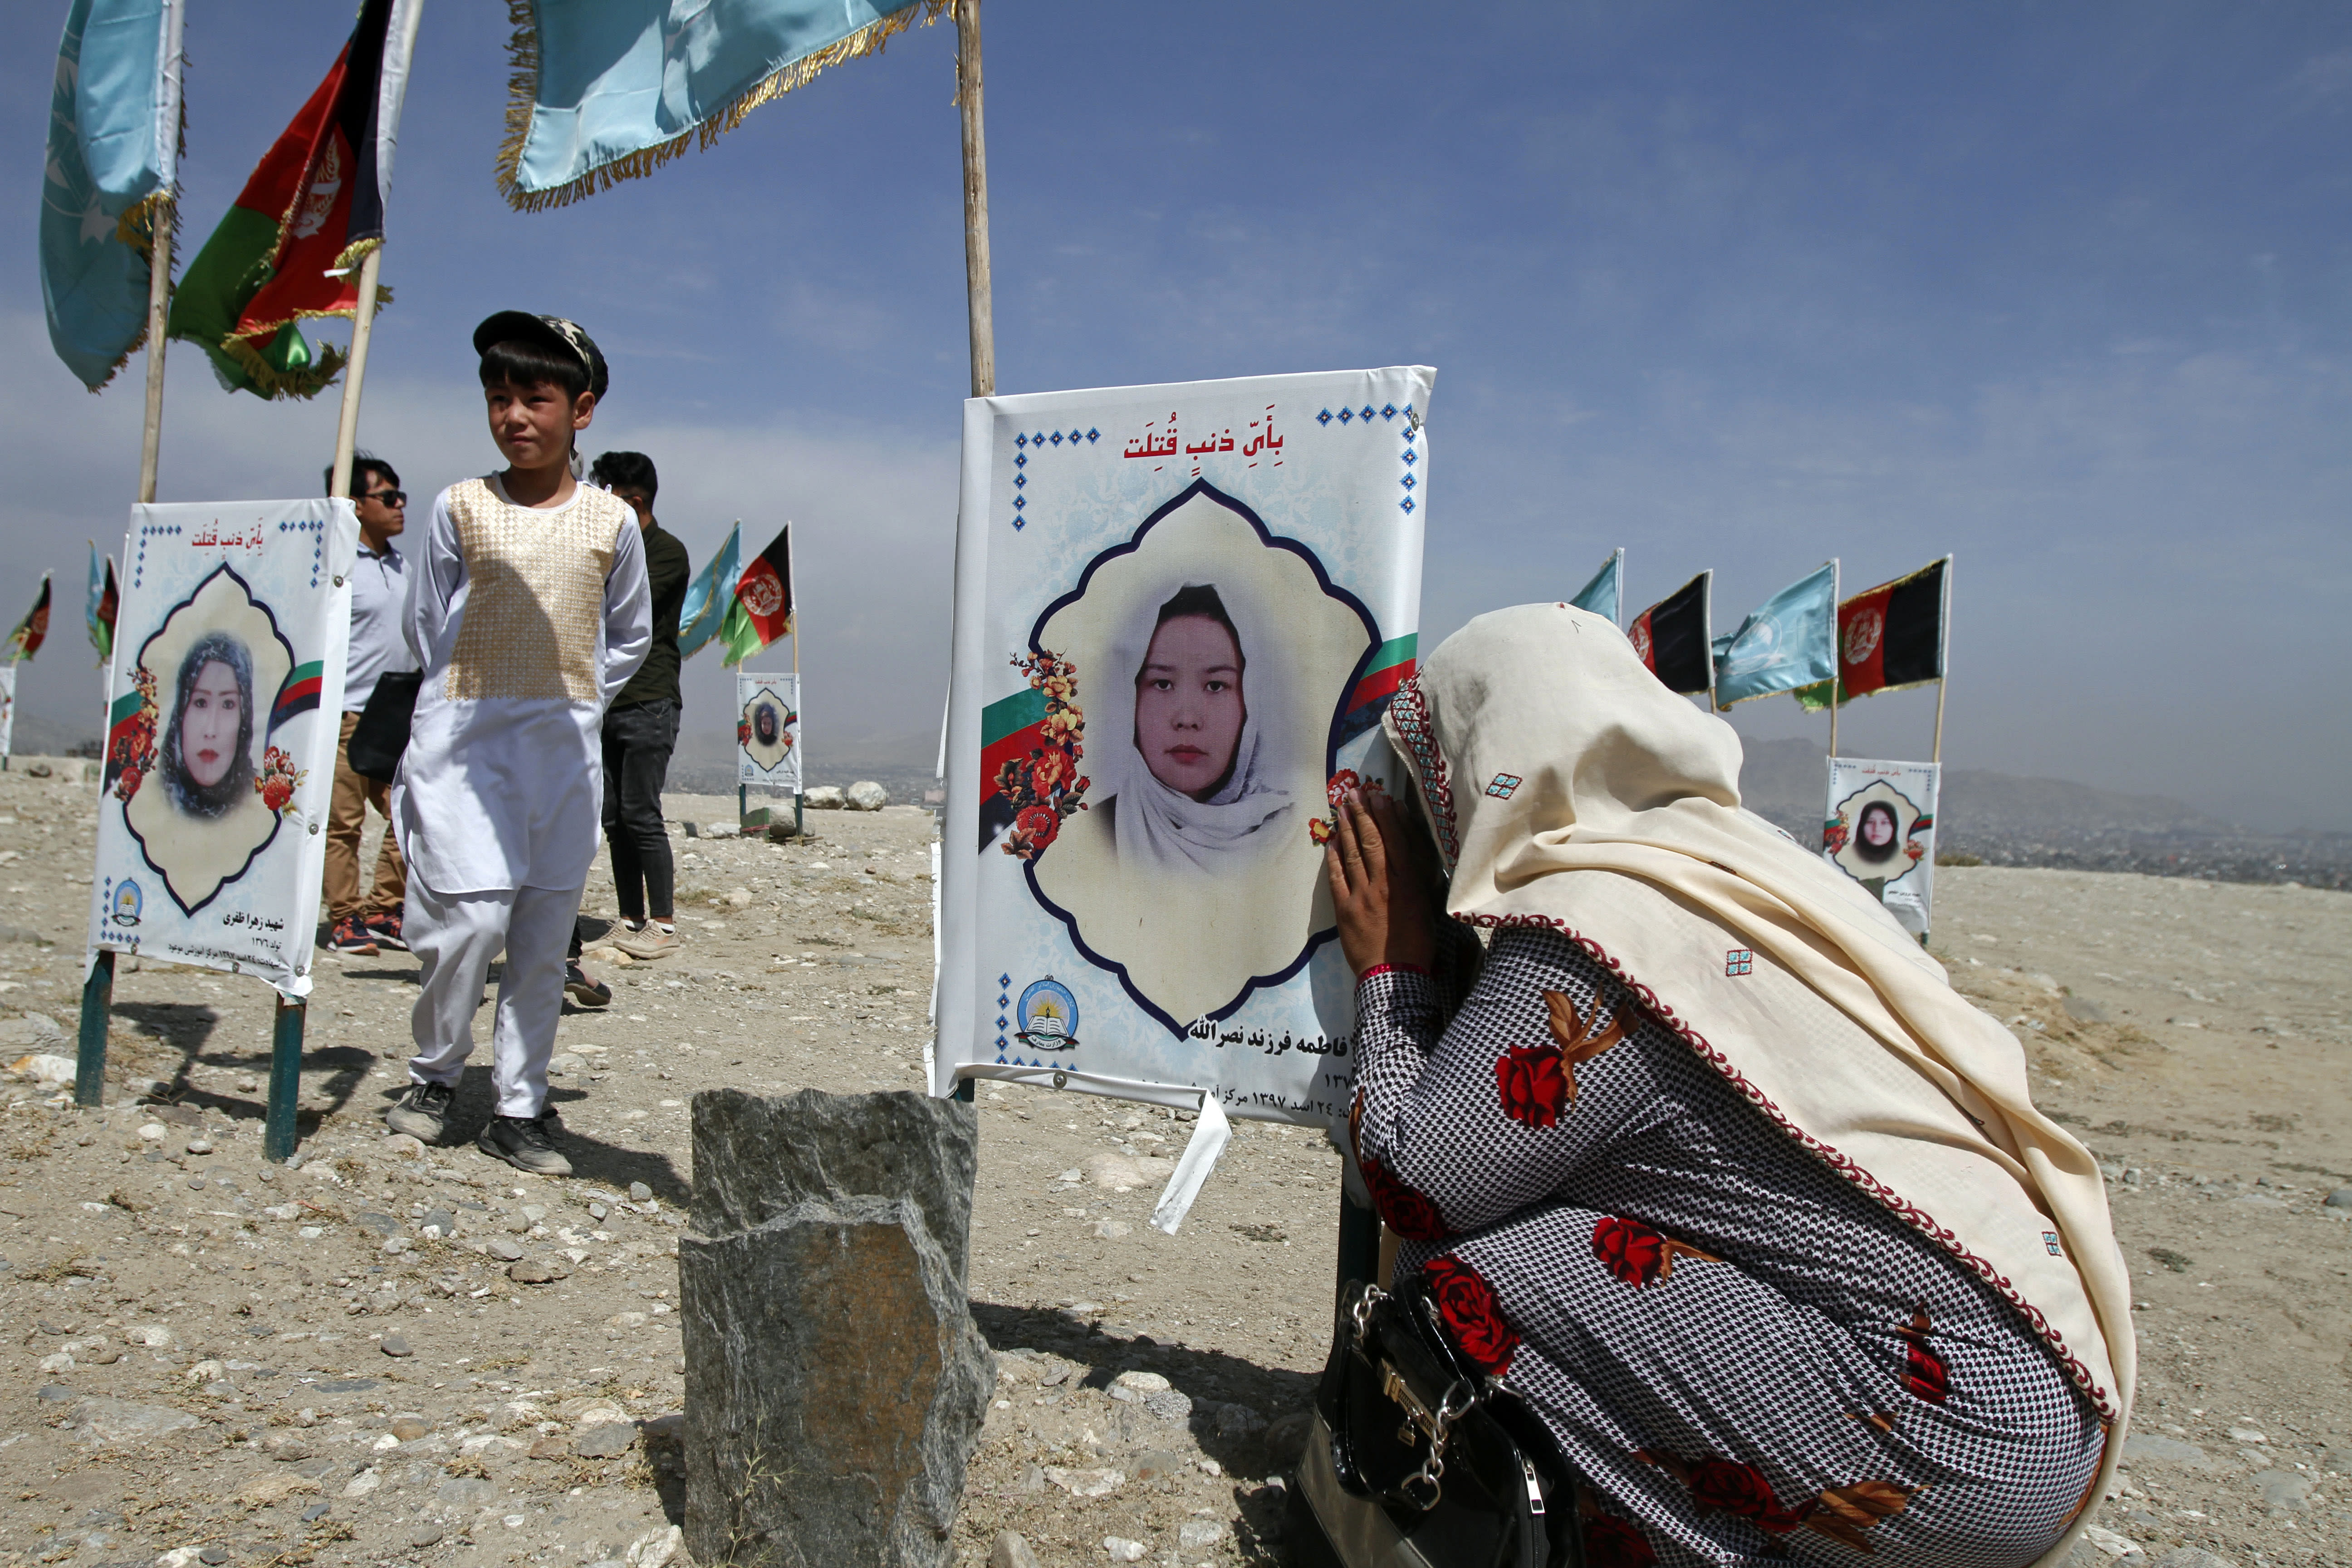 An Afghan woman cries next to the grave of her daughter, adorned with her picture, on the outskirts of Kabul, Afghanistan, Monday, Sept 14, 2020. Scores of friends and families of students who were killed in local conflicts are gathering in a cemetery to call for a permanent countrywide ceasefire from the parties to the intra-Afghan peace conference taking place in Doha, Qatar. (AP Photo/Rahmat Gul)